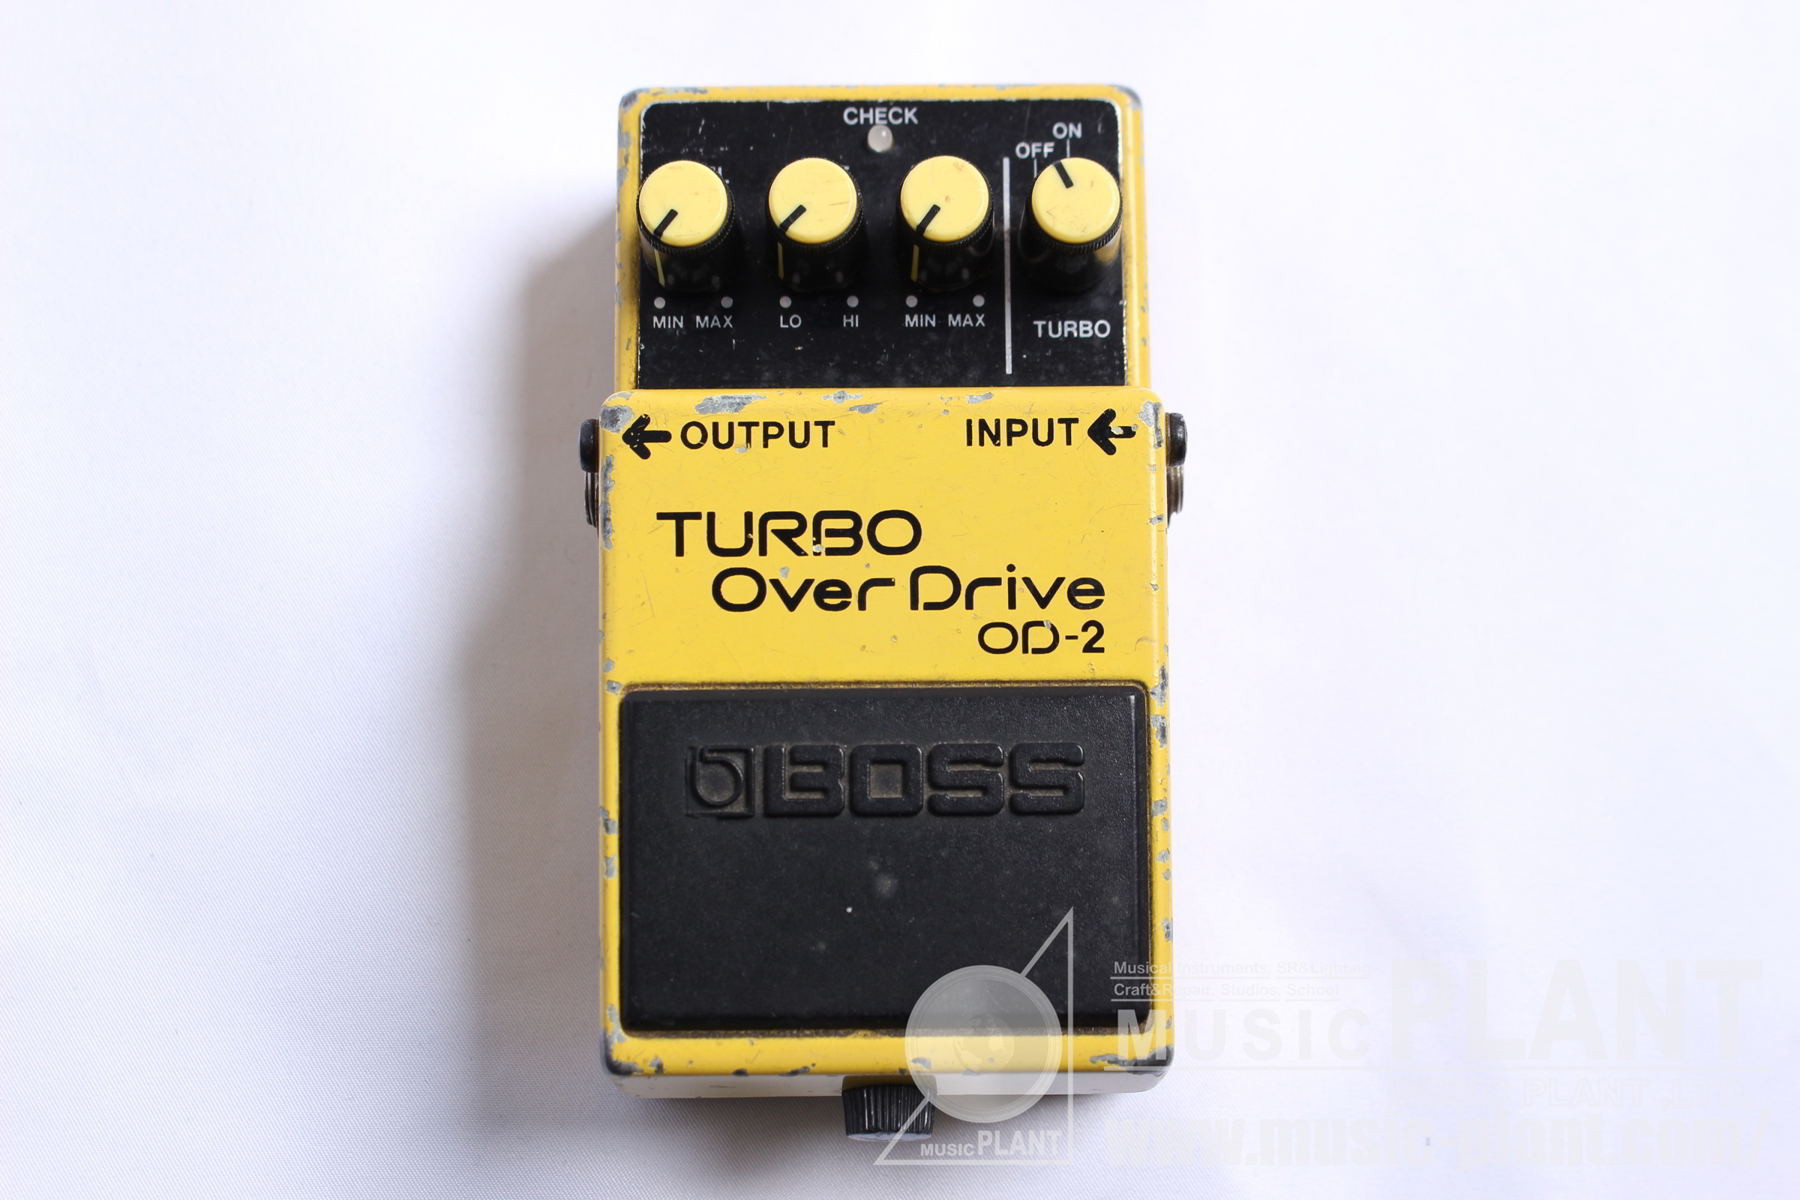 OD-2 TURBO OverDriveヘッド画像